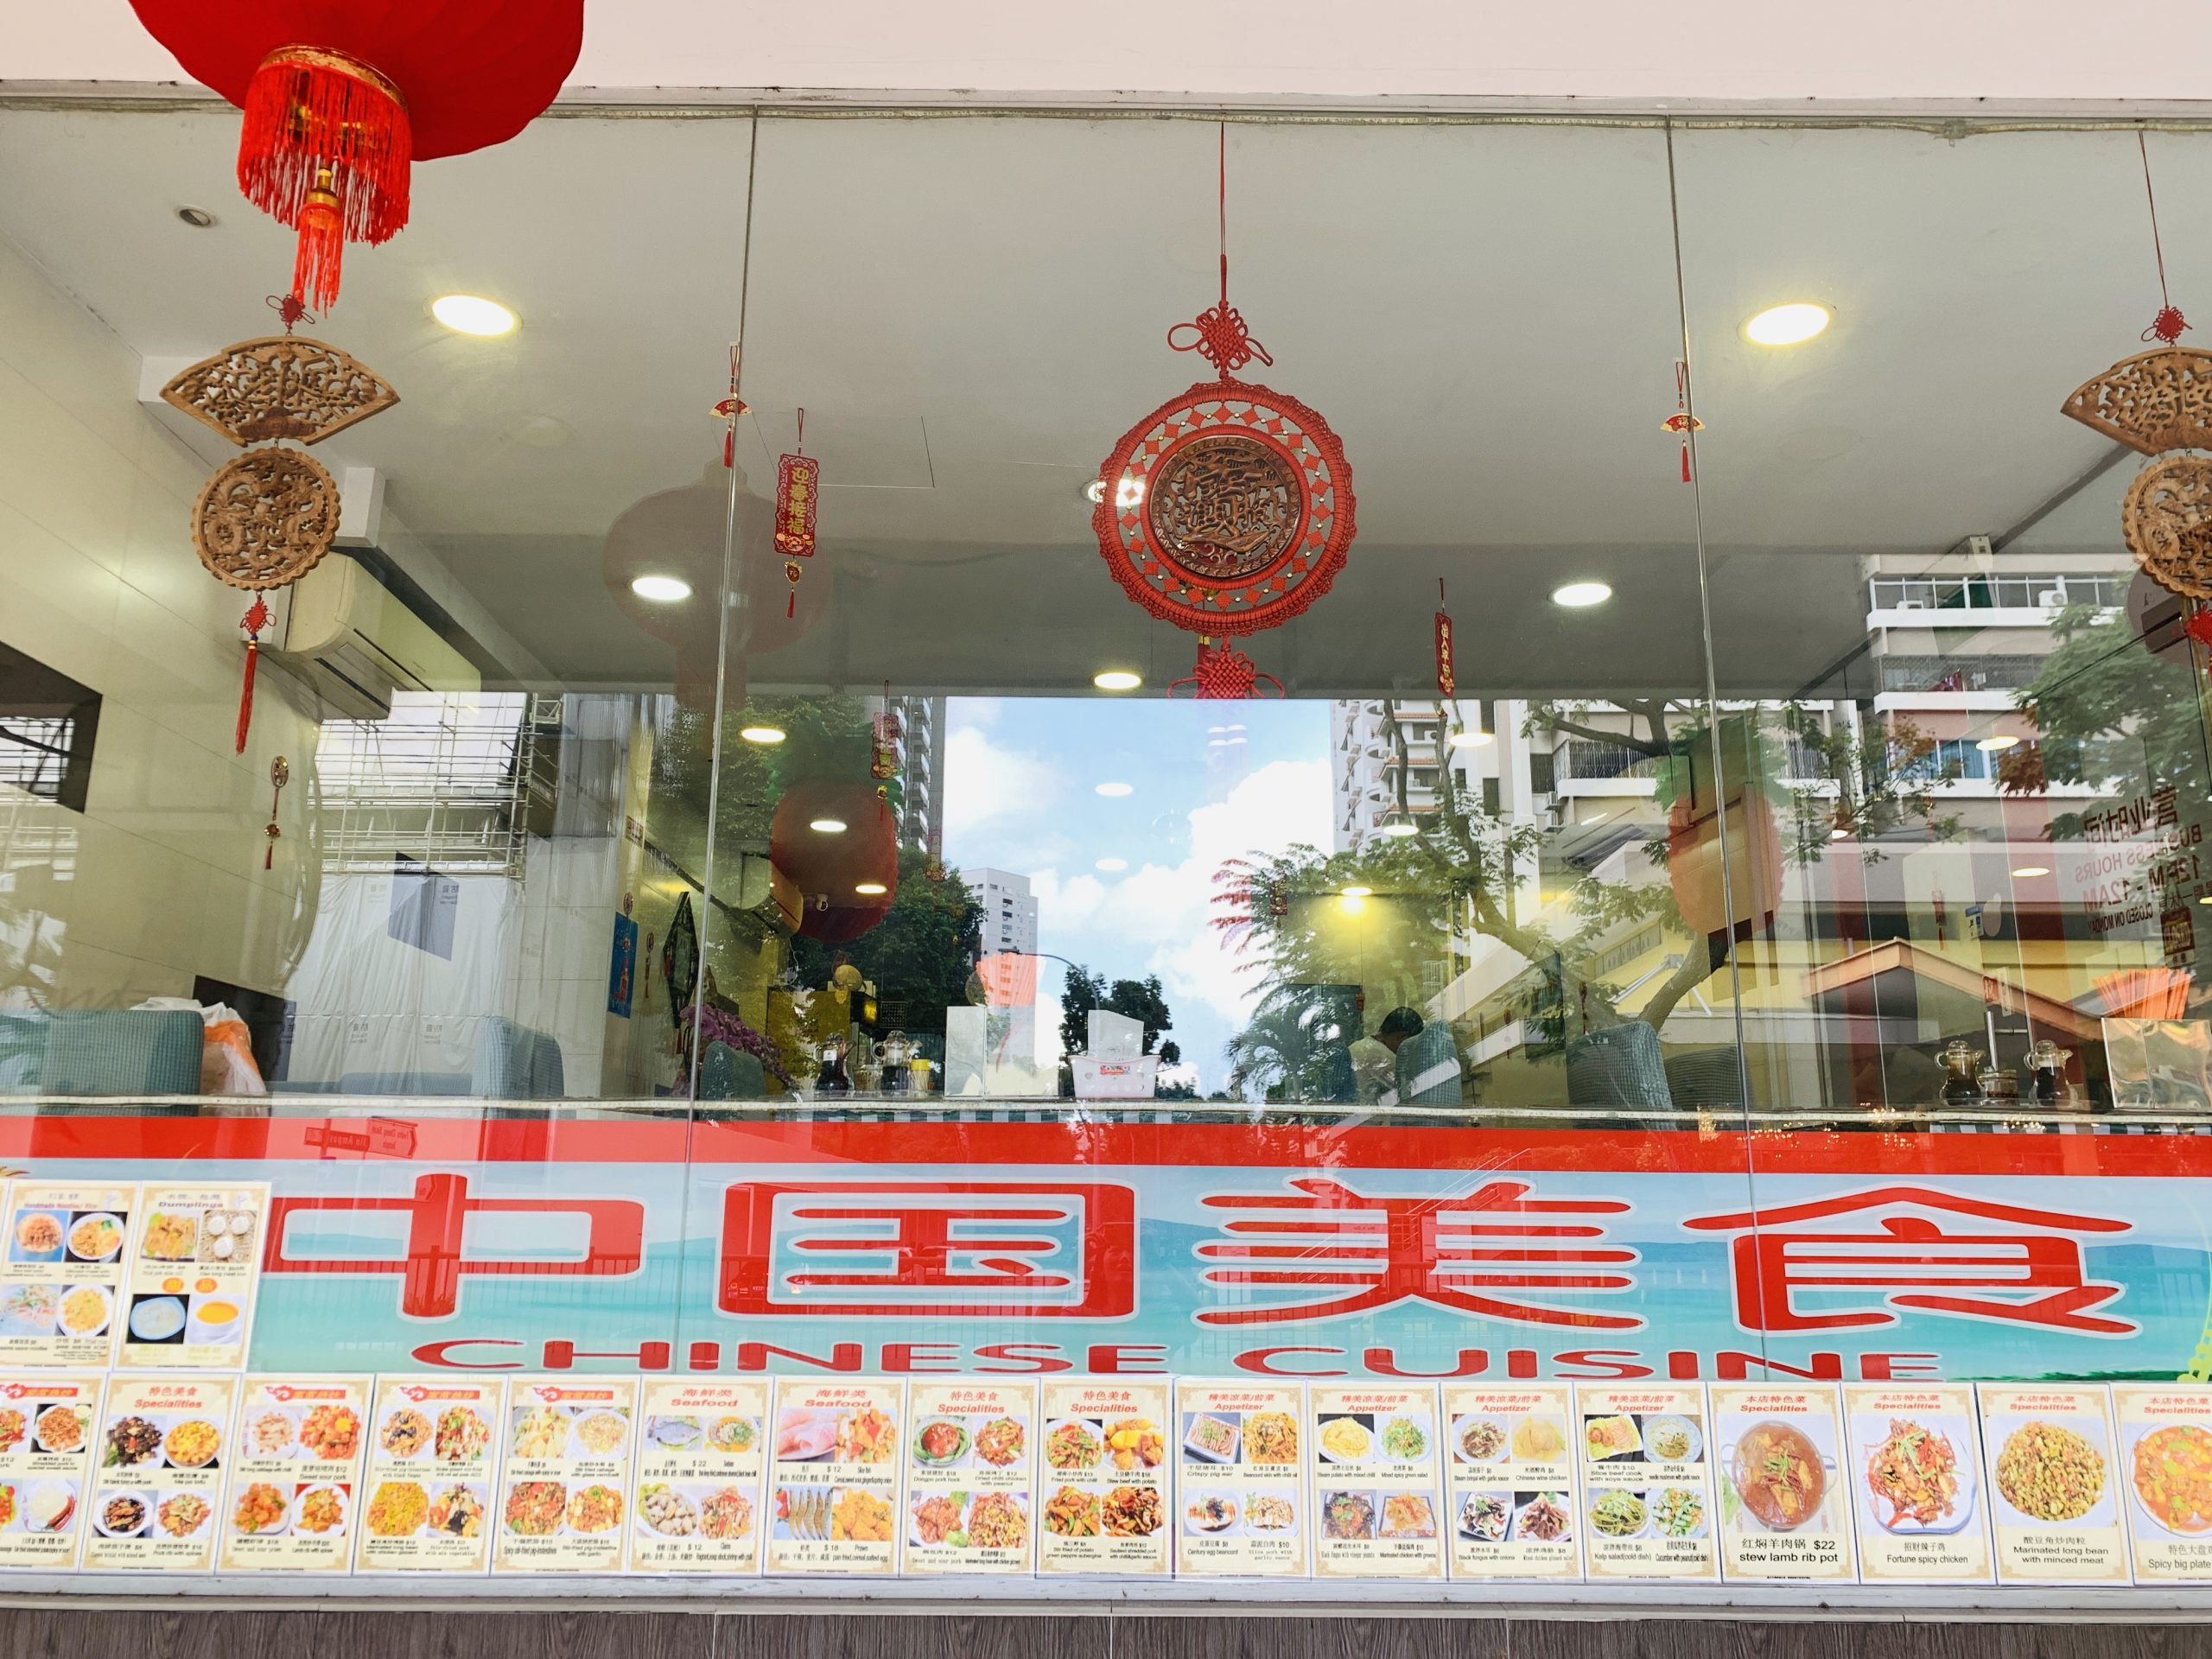 Chinese Cuisine - Restaurant Front